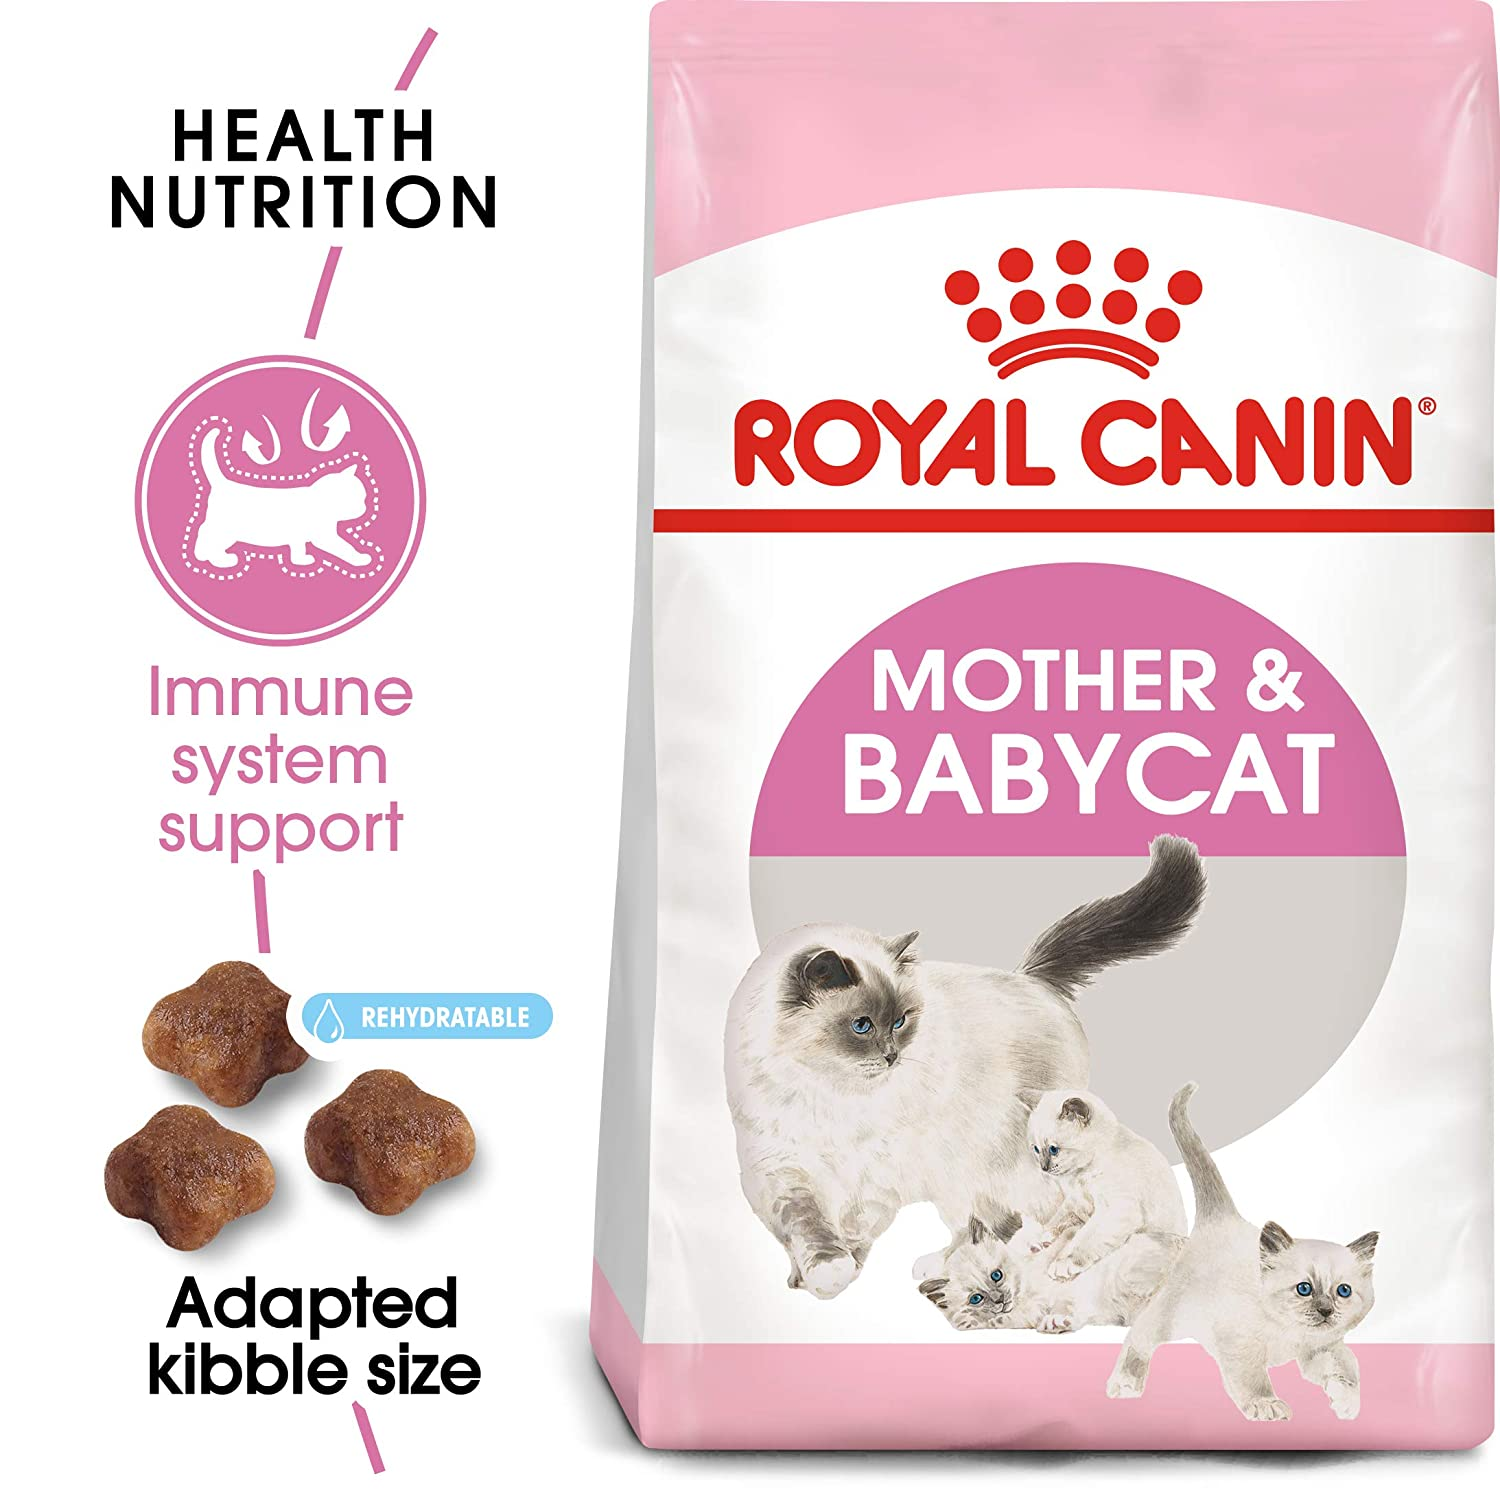 Royal Canin Mother & Baby Cat, 2kg